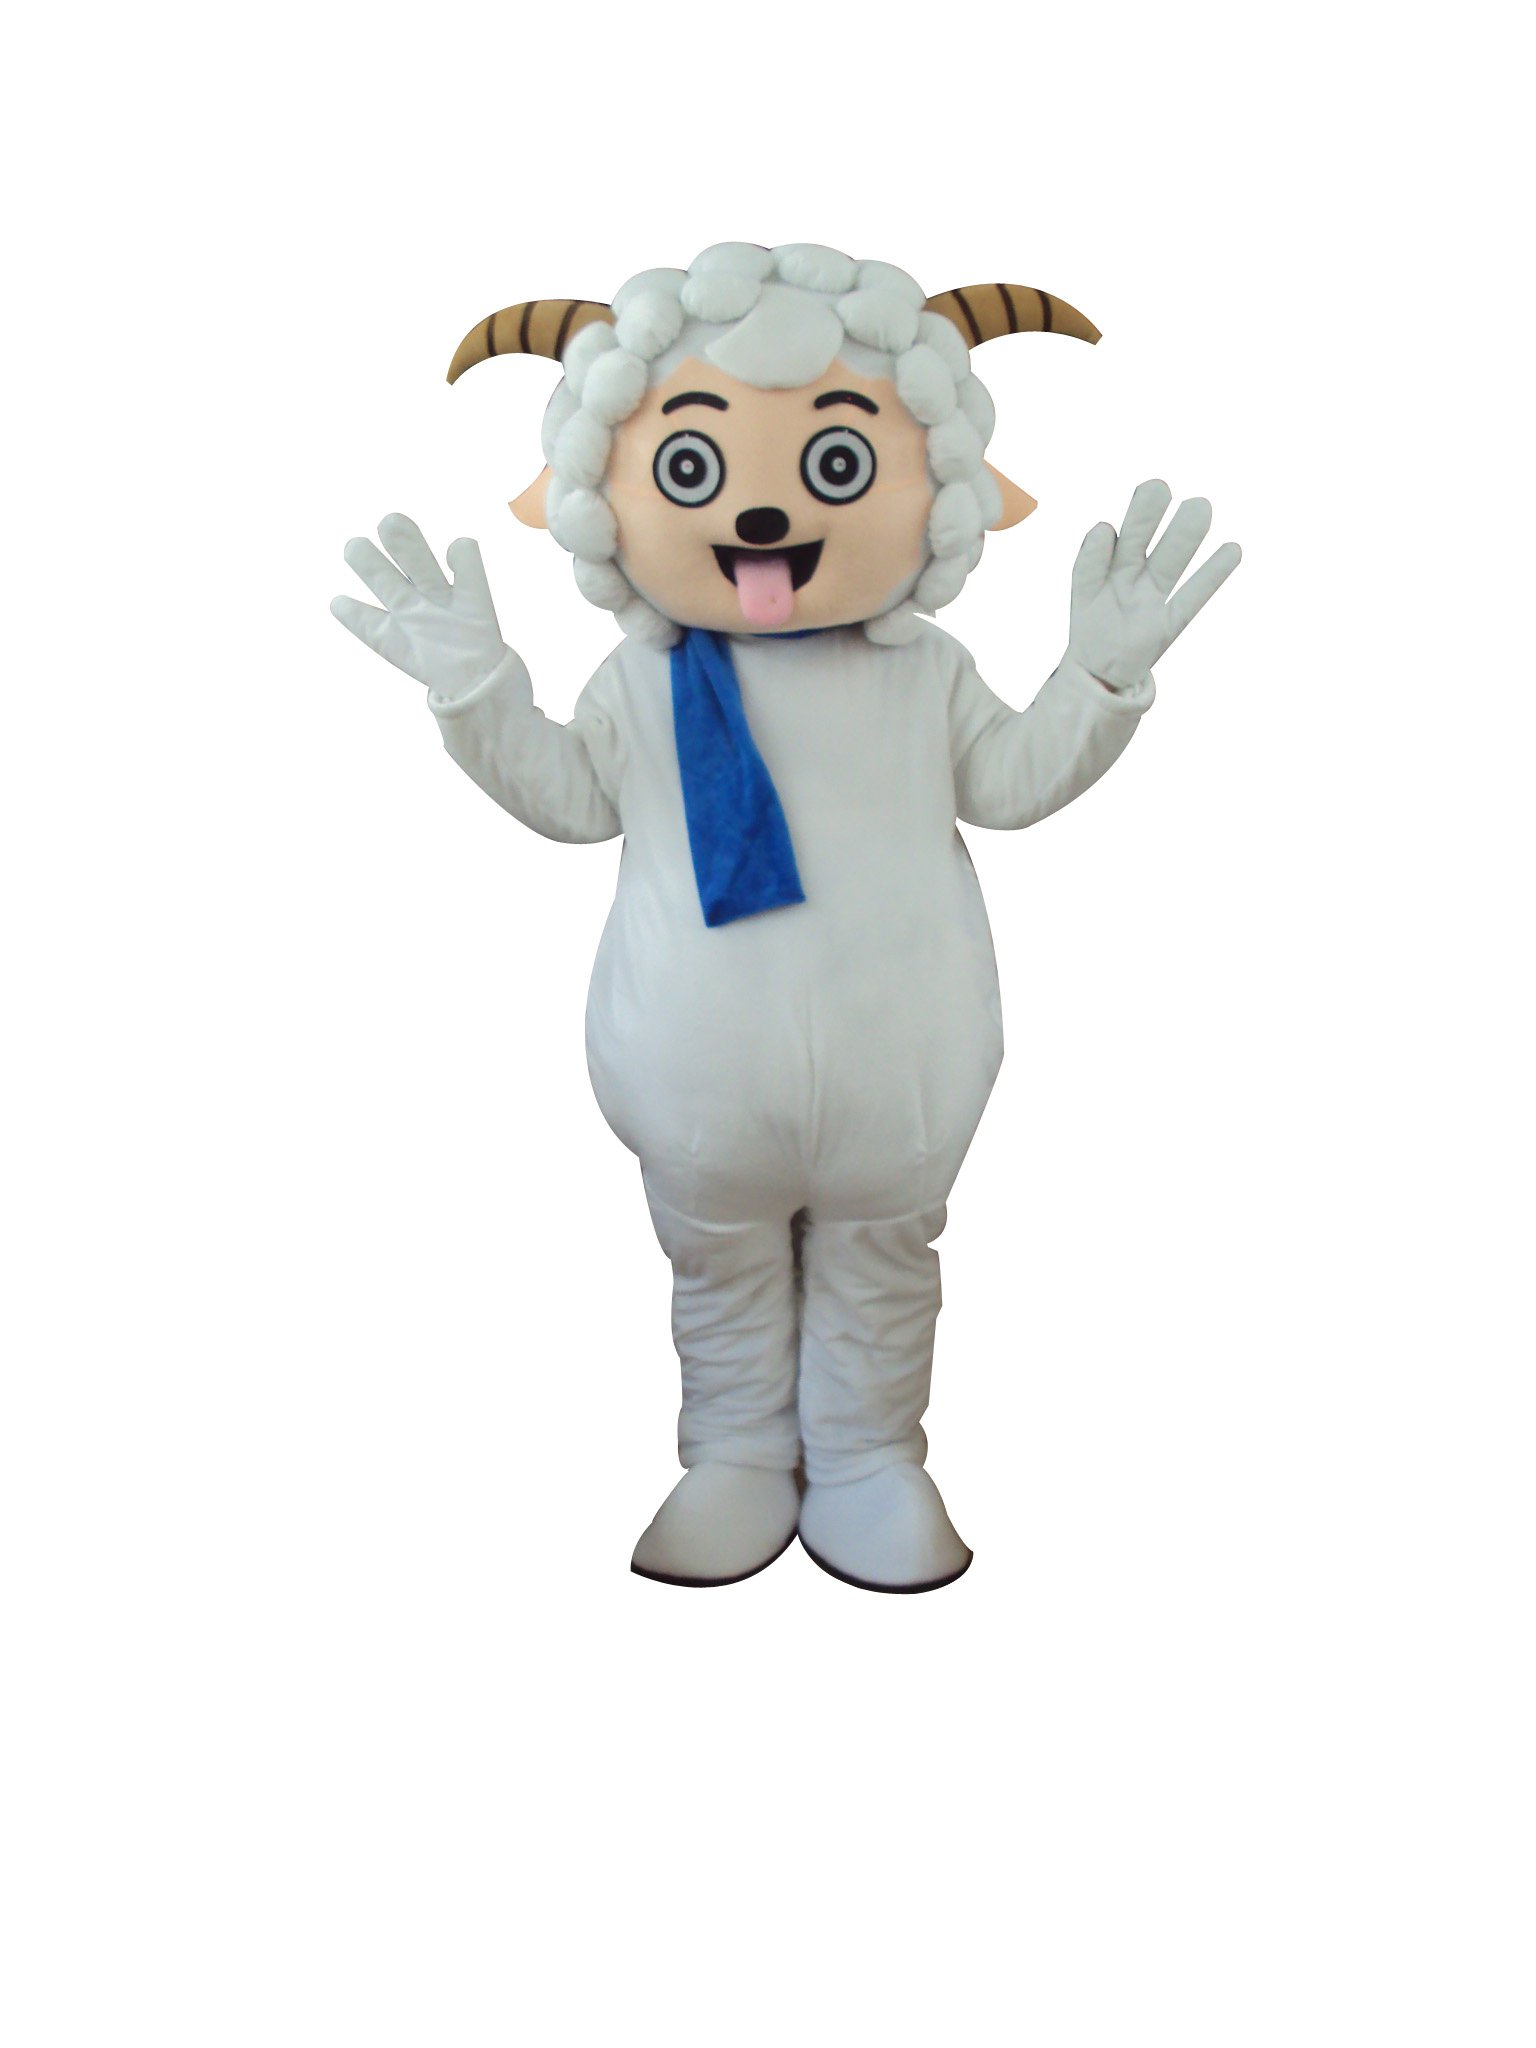 Pleasant Goat and Big Big Wolf Doll Cartoon Walking Doll Clothing Hedging Cute Sheep Mascot Pleasant Mascot Costume